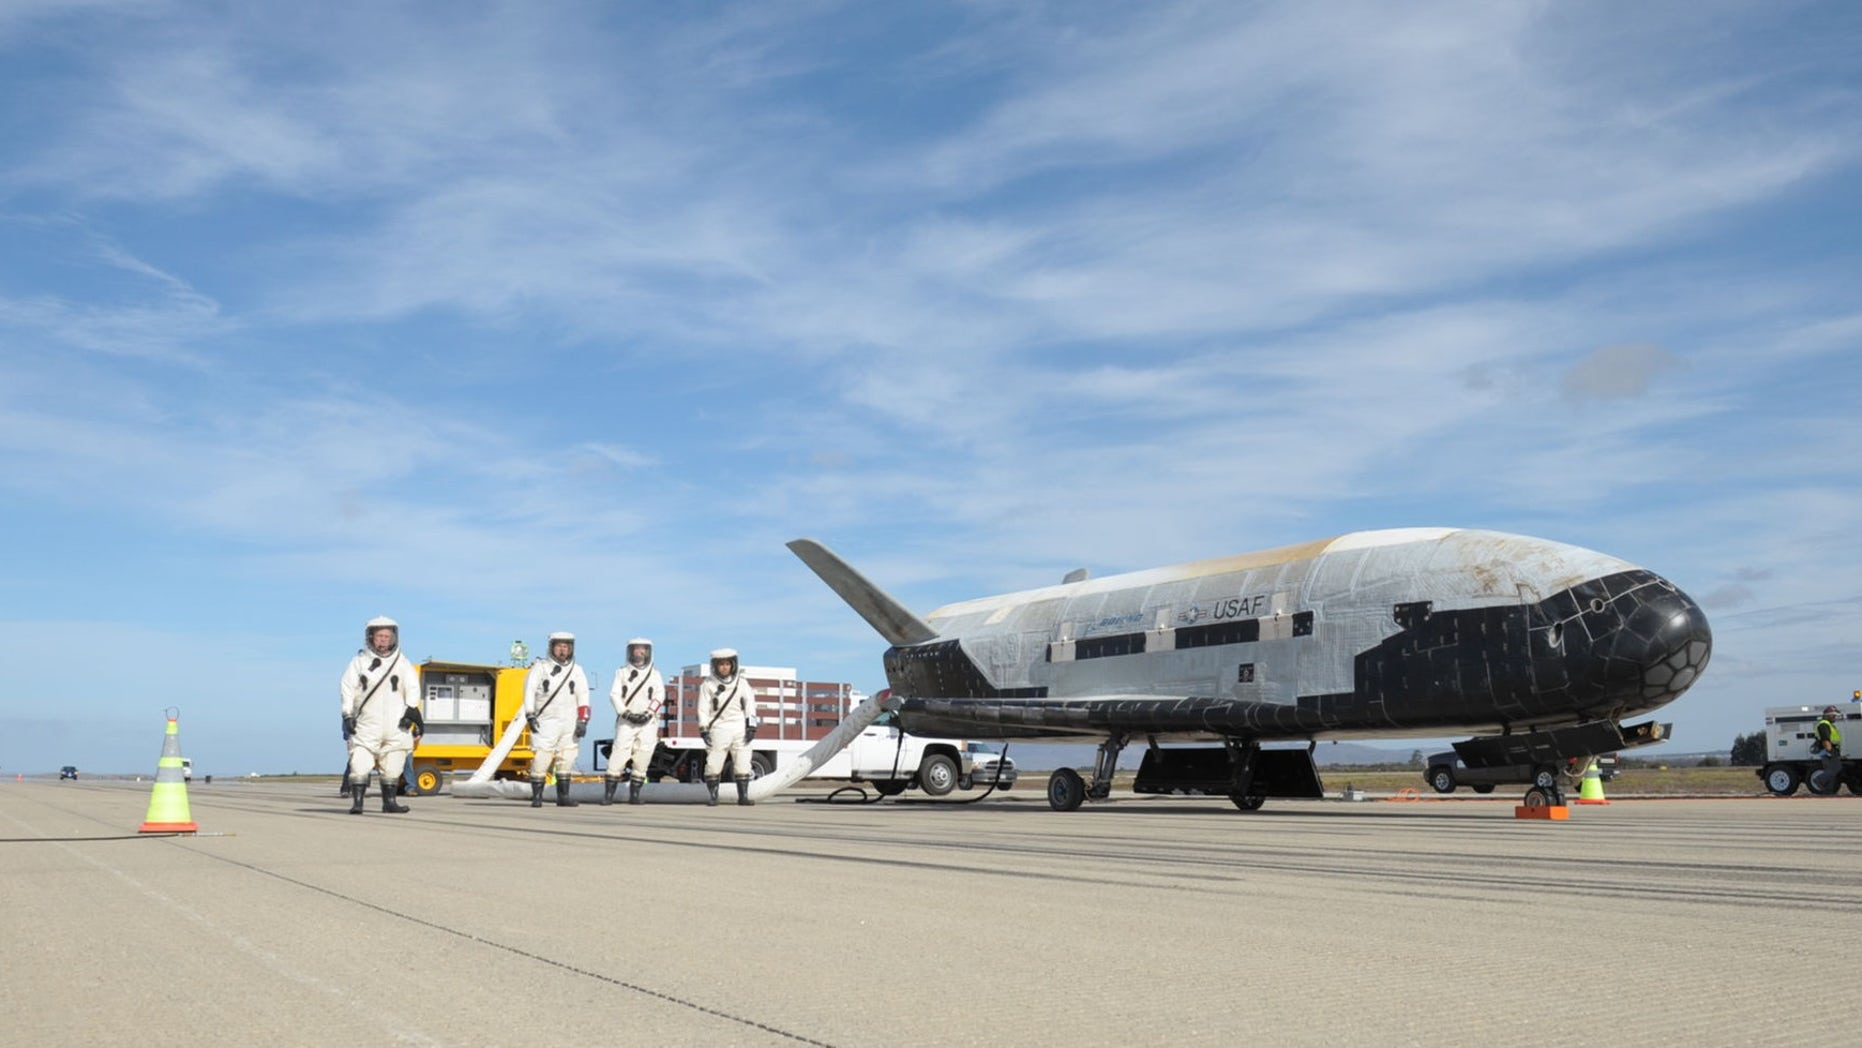 One of the U.S. Air Force's robotic X-37B space planes is seen on the runway after landing itself following a classified mission. The fifth X-37B mission, called Orbital Test Vehicle 5, will launch Sept. 7, 2017, from Florida's Cape Canaveral Air Force Station atop an Atlas V rocket.